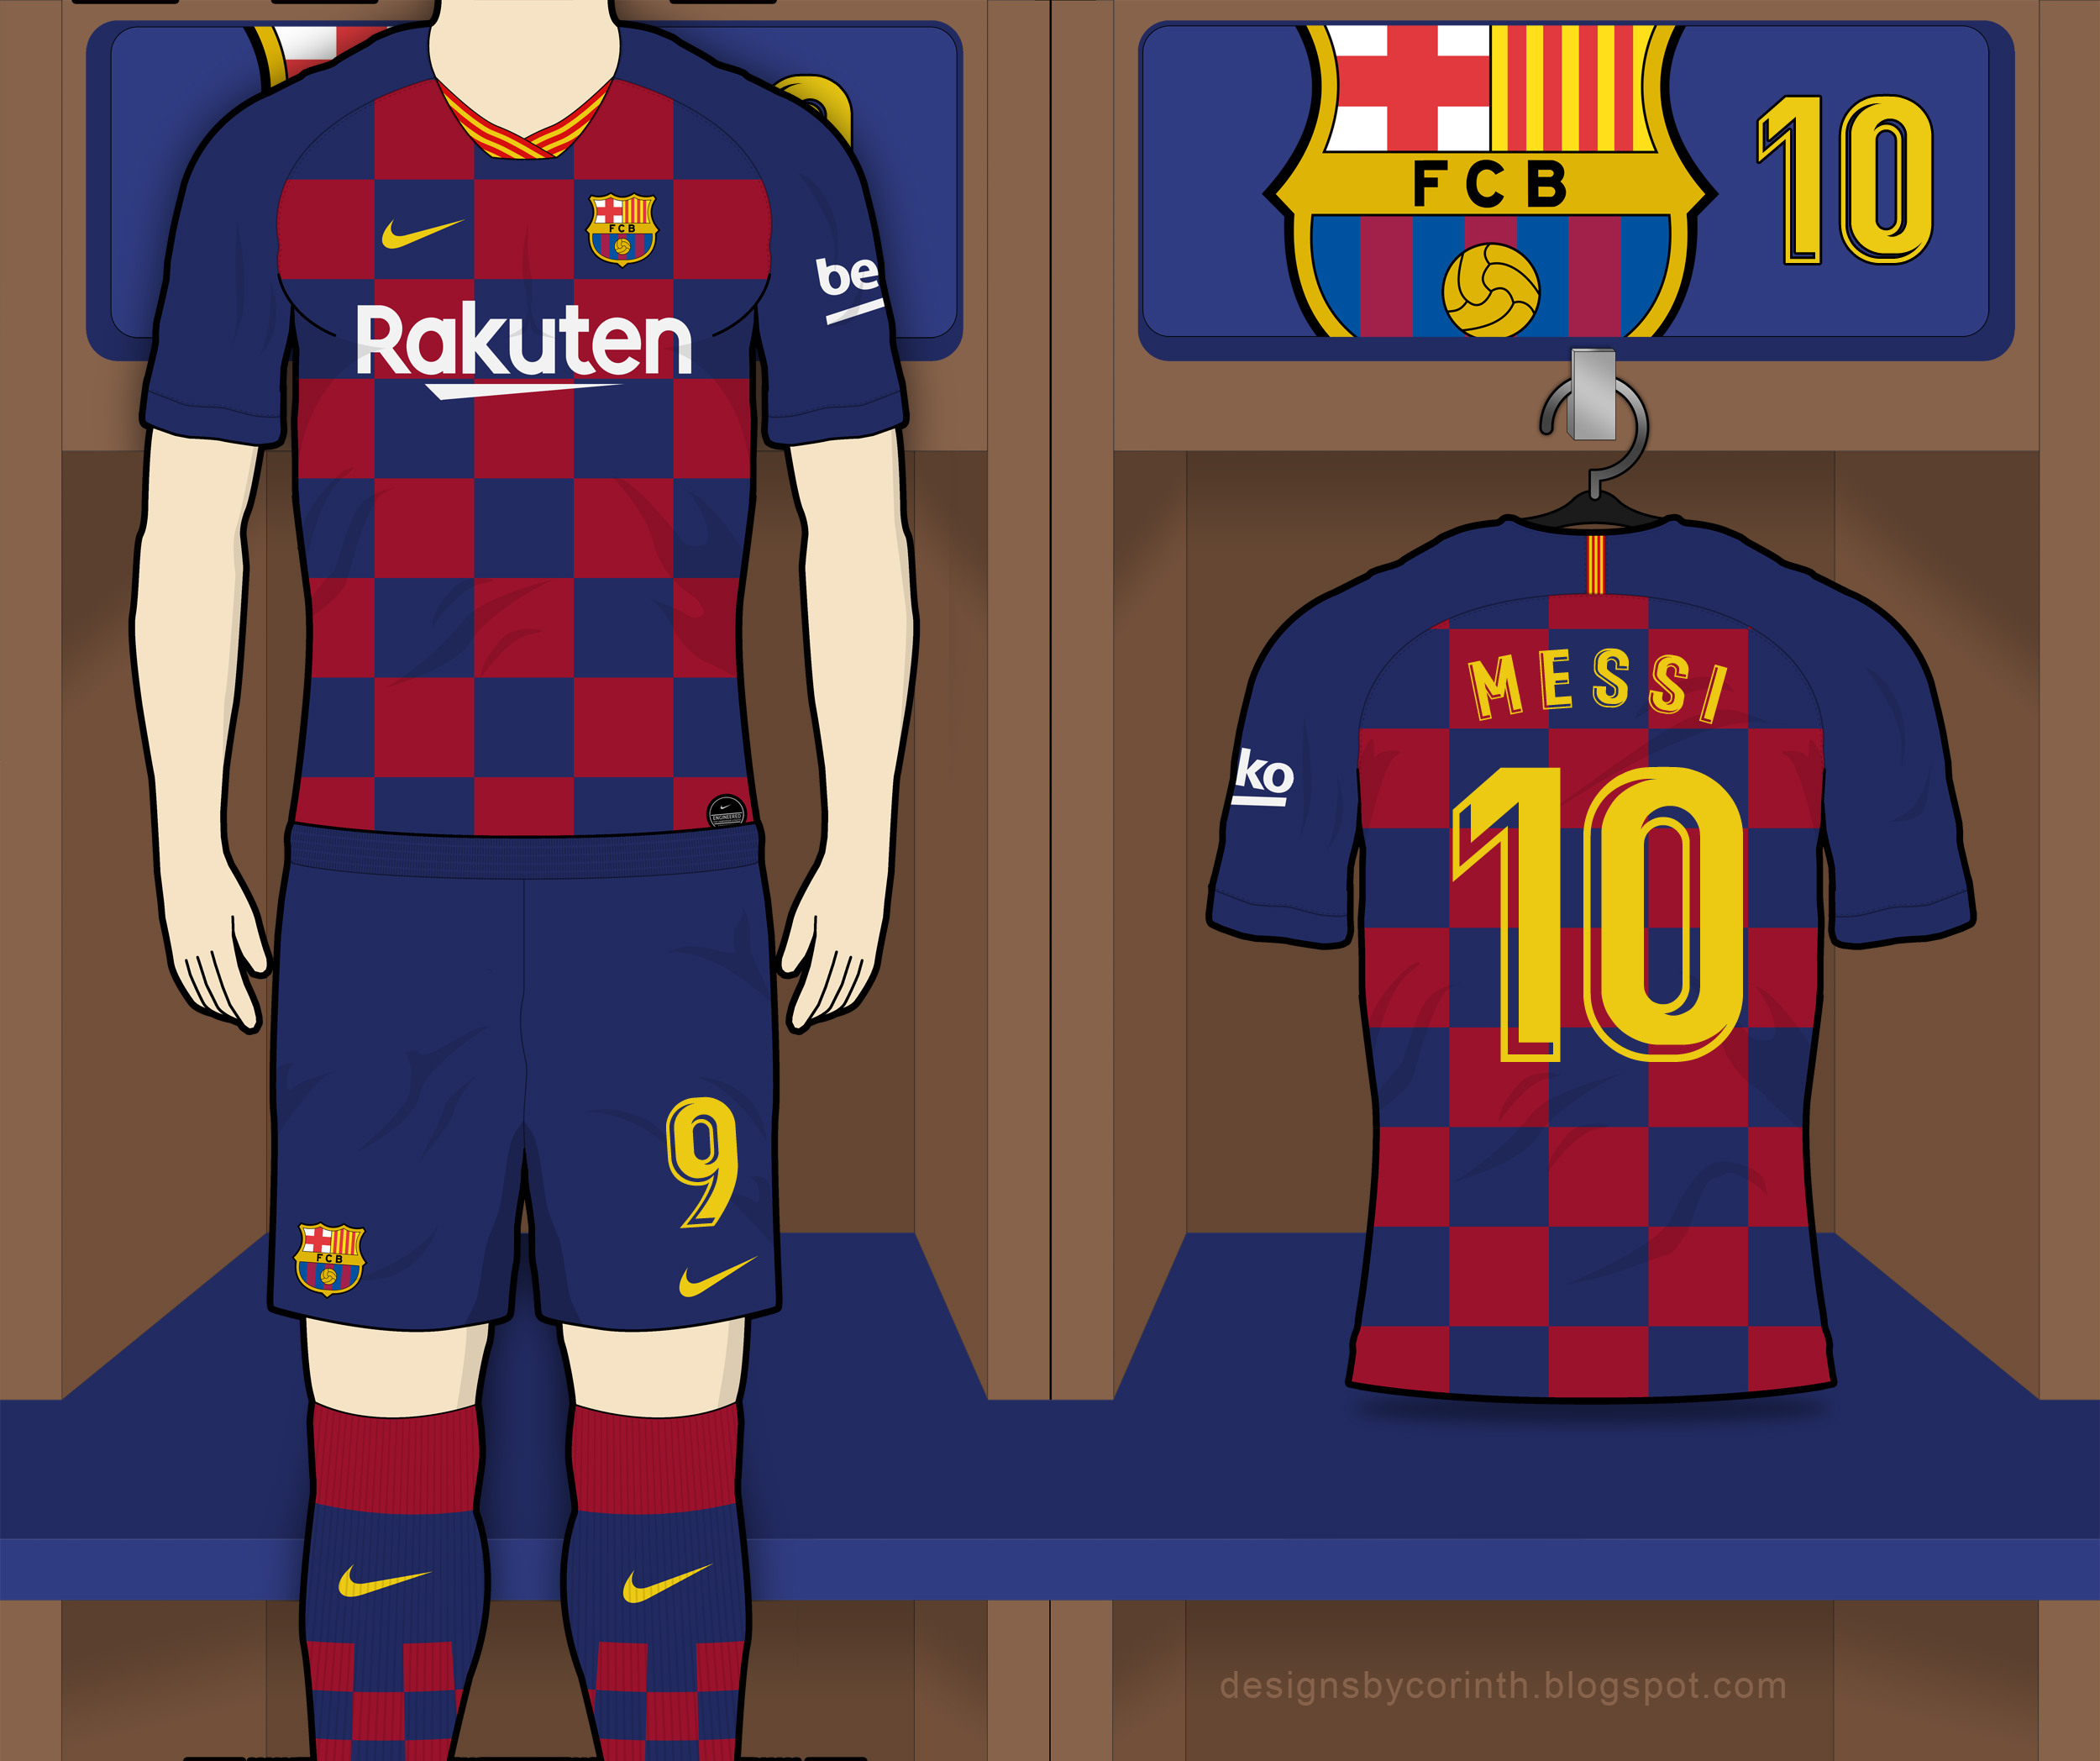 cc3b5ef1882 Click to enlarge image barcelona 19 20 home kit prediction a.jpg ...